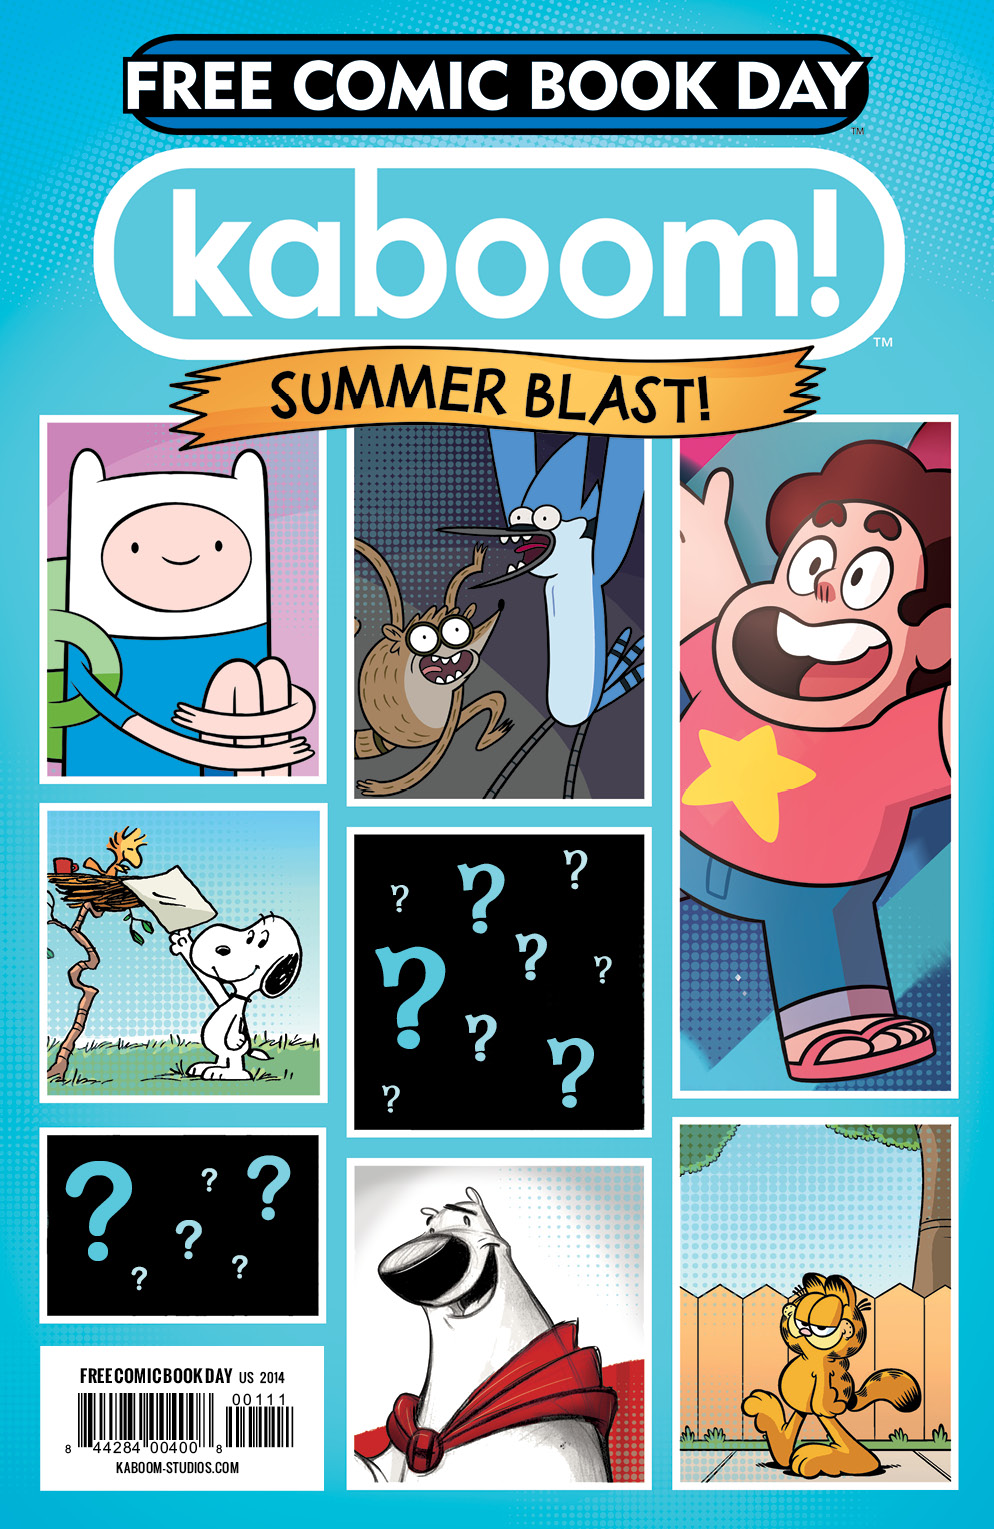 Kaboom Summer Blast Free Comic Book Day